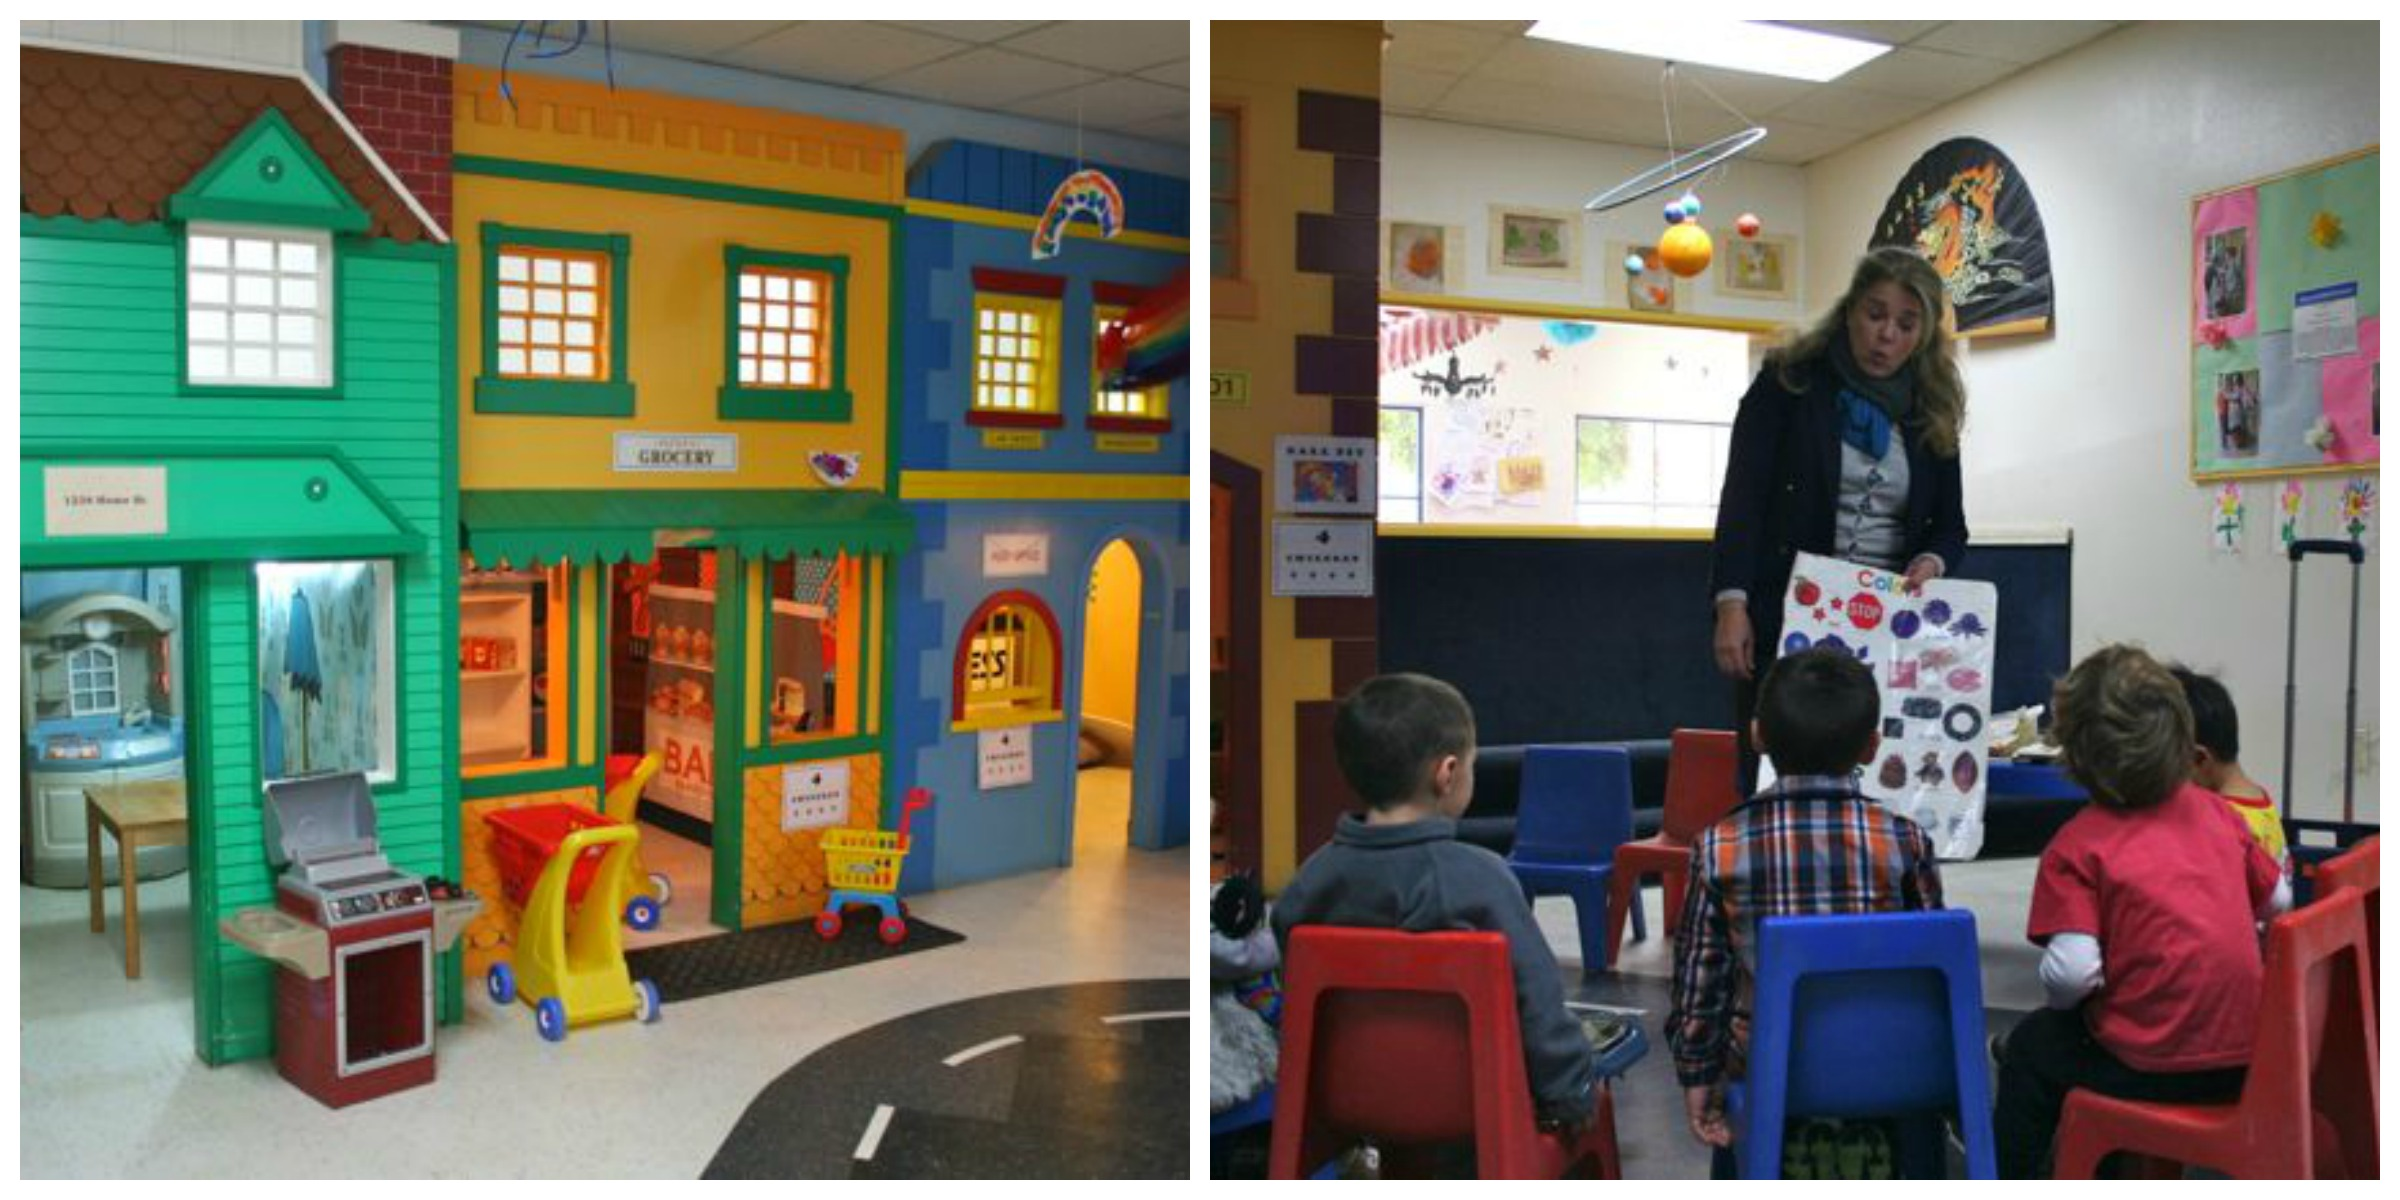 Childcare Options In The Bubble Tutor Time In Agoura